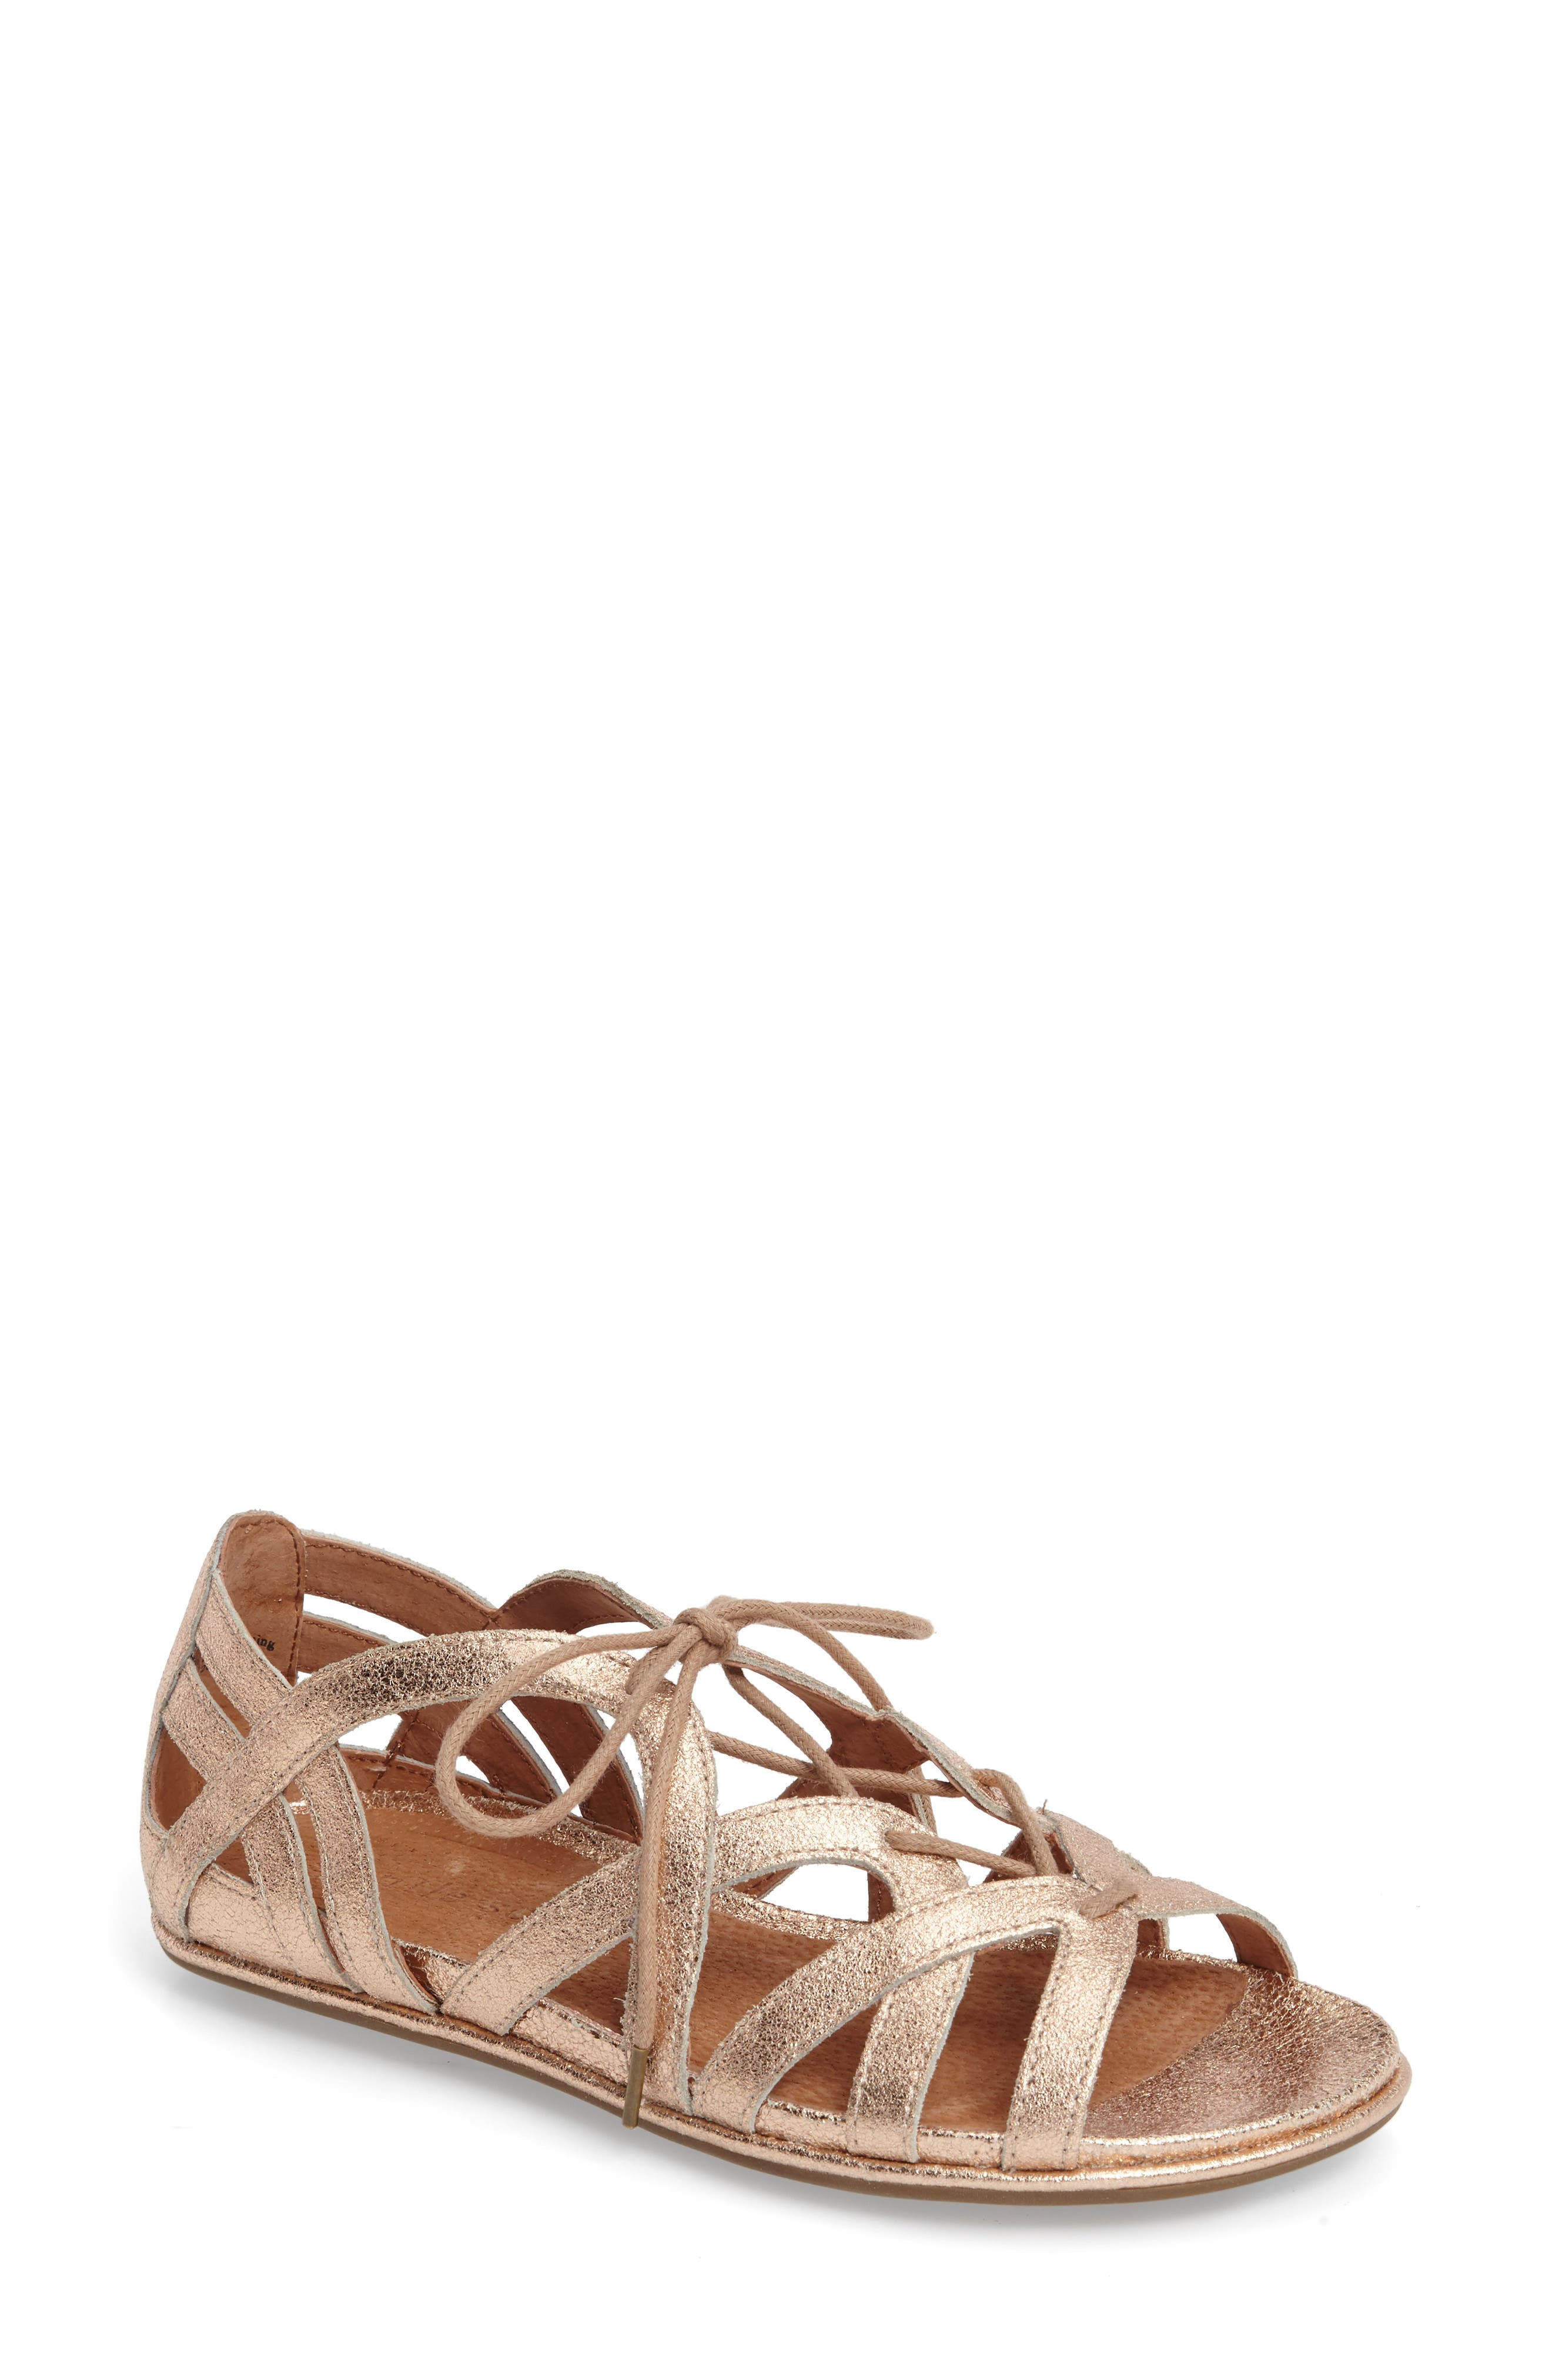 Orly Lace-Up Sandal,                         Main,                         color, ROSE GOLD LEATHER